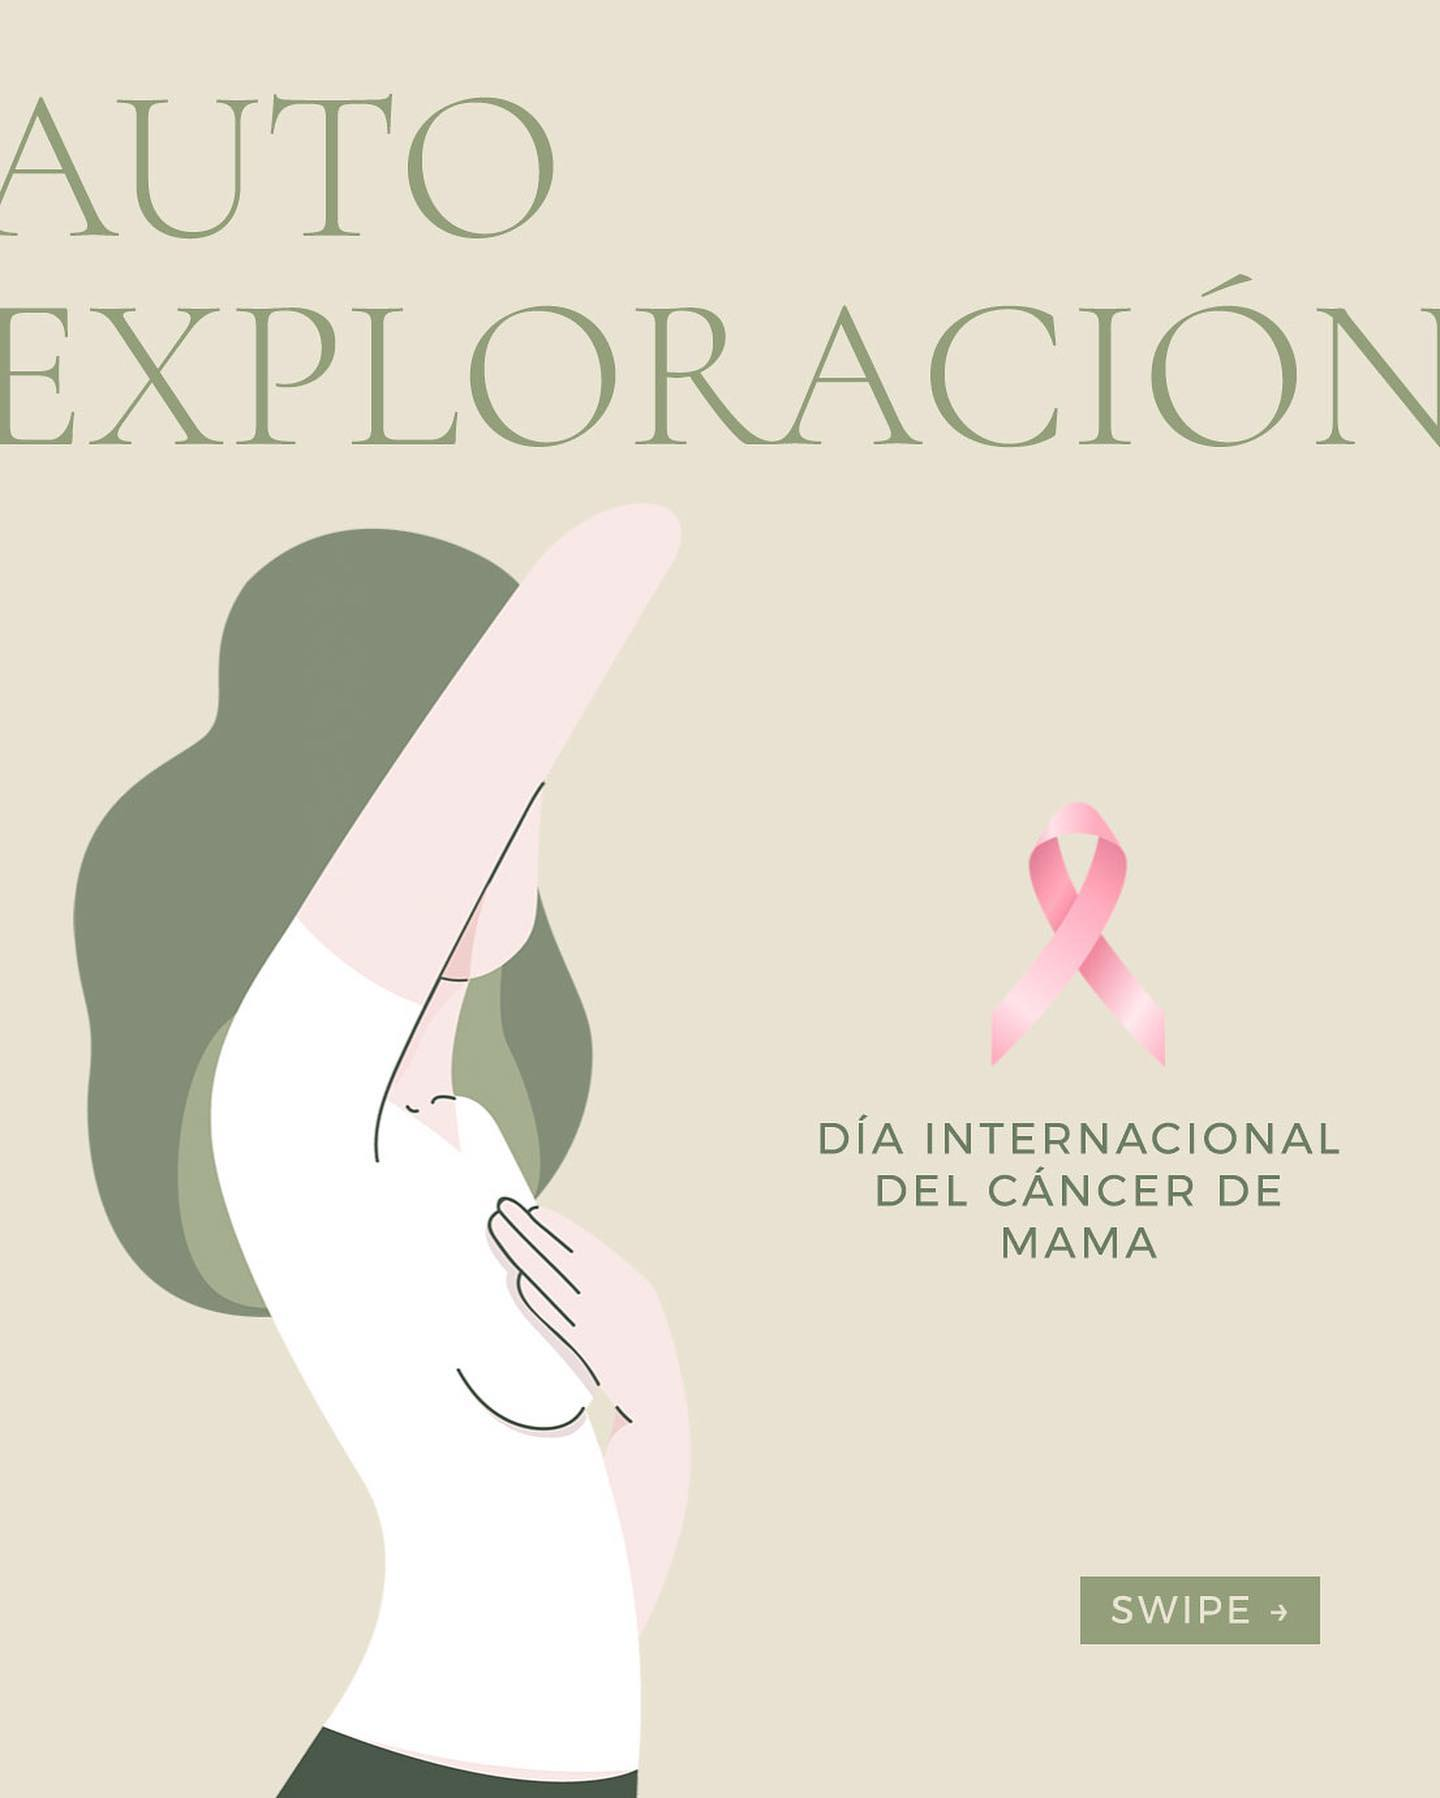 The massage we are going to talk about today is indispensable for any woman: self-exploration.  Knowing your breasts is